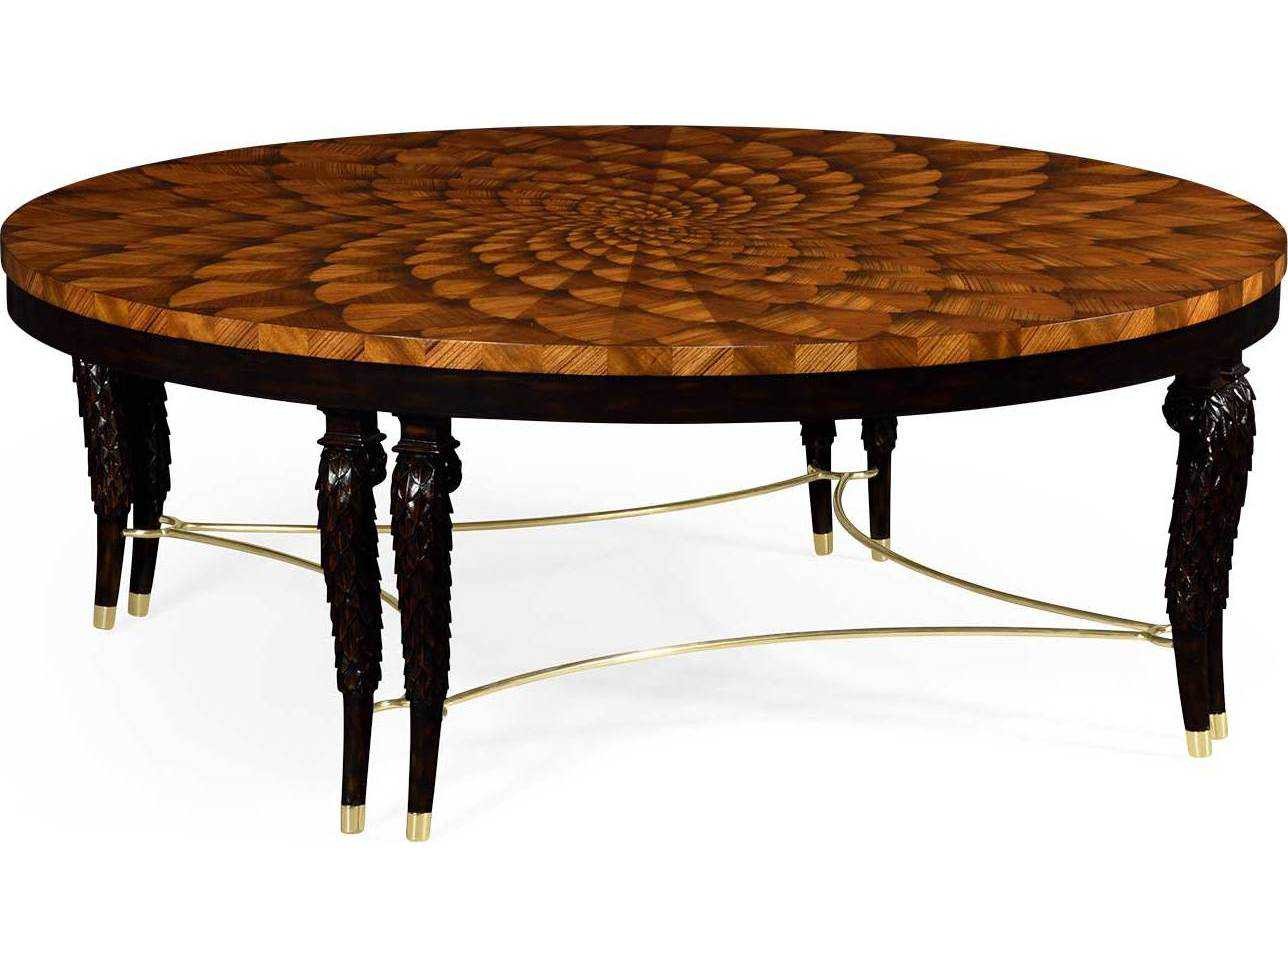 Jonathan Charles Icarus Medium Zebrano Feather Inlay Hand Carved Coffee Table With Brass Stretcher Throughout 2018 Icarus Round Bar Tables (View 13 of 25)